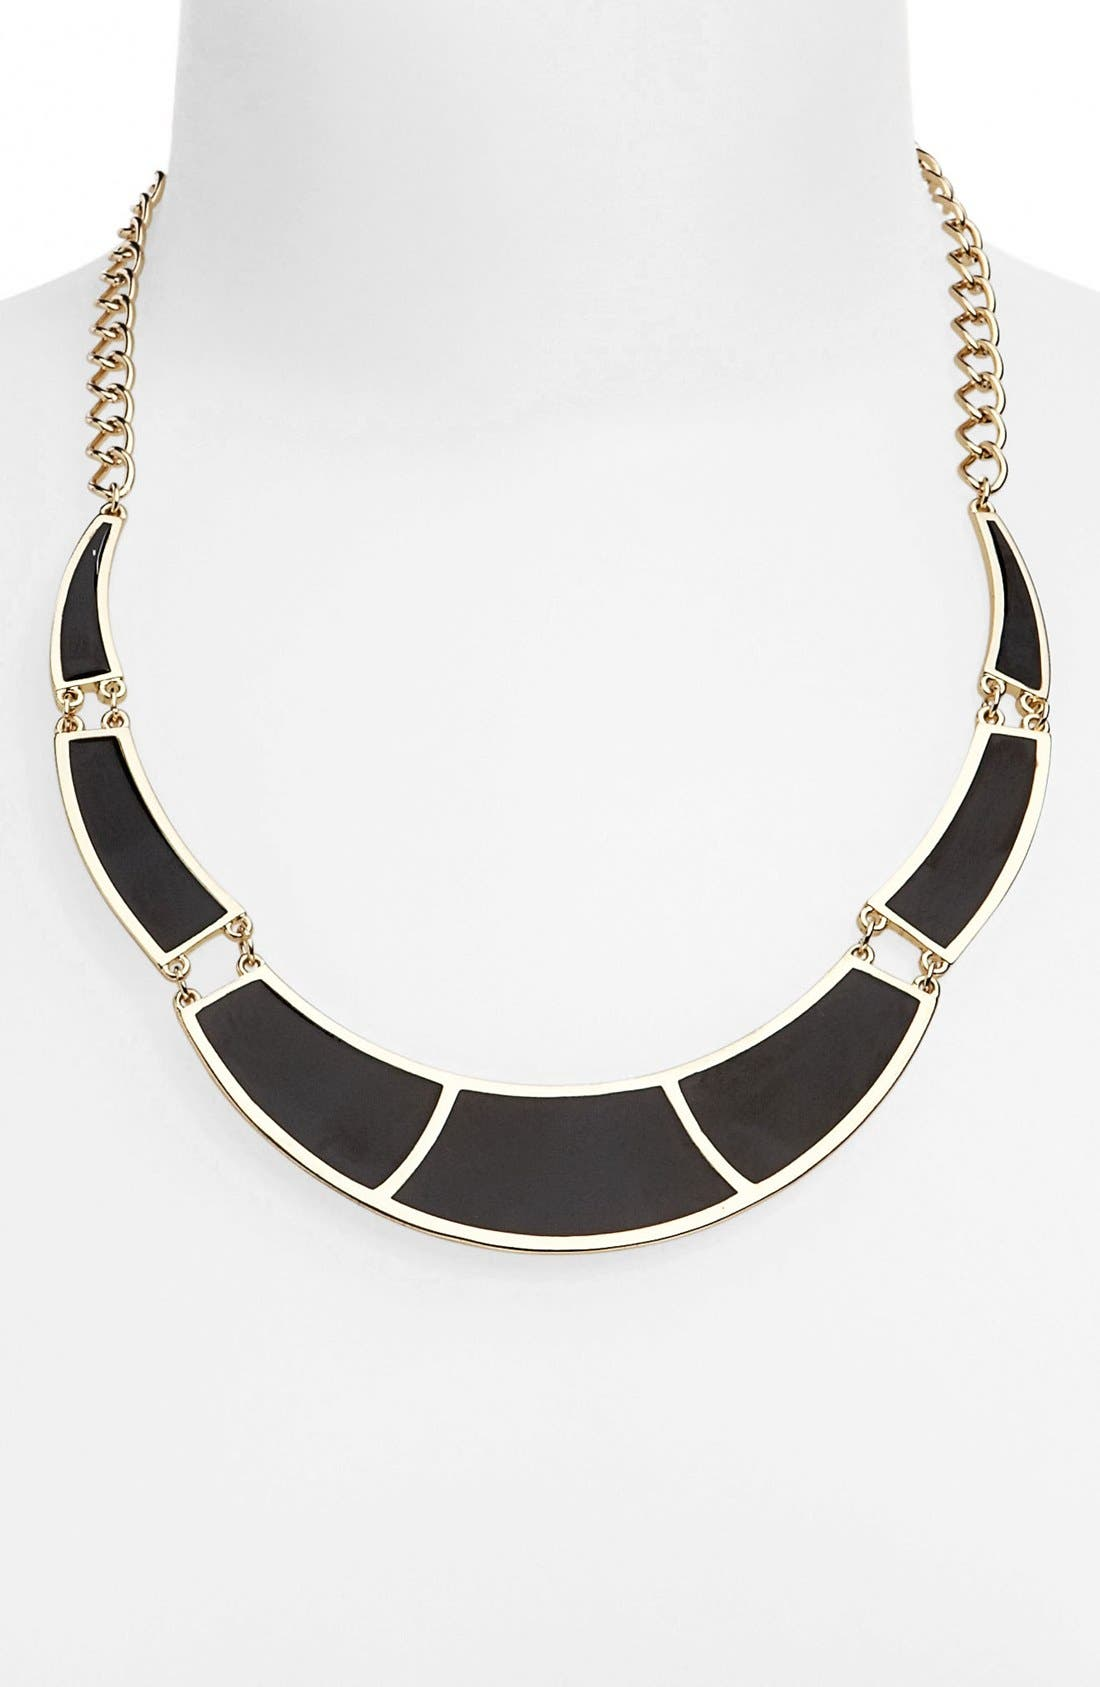 Main Image - Carole Collar Necklace (Online Exclusive)